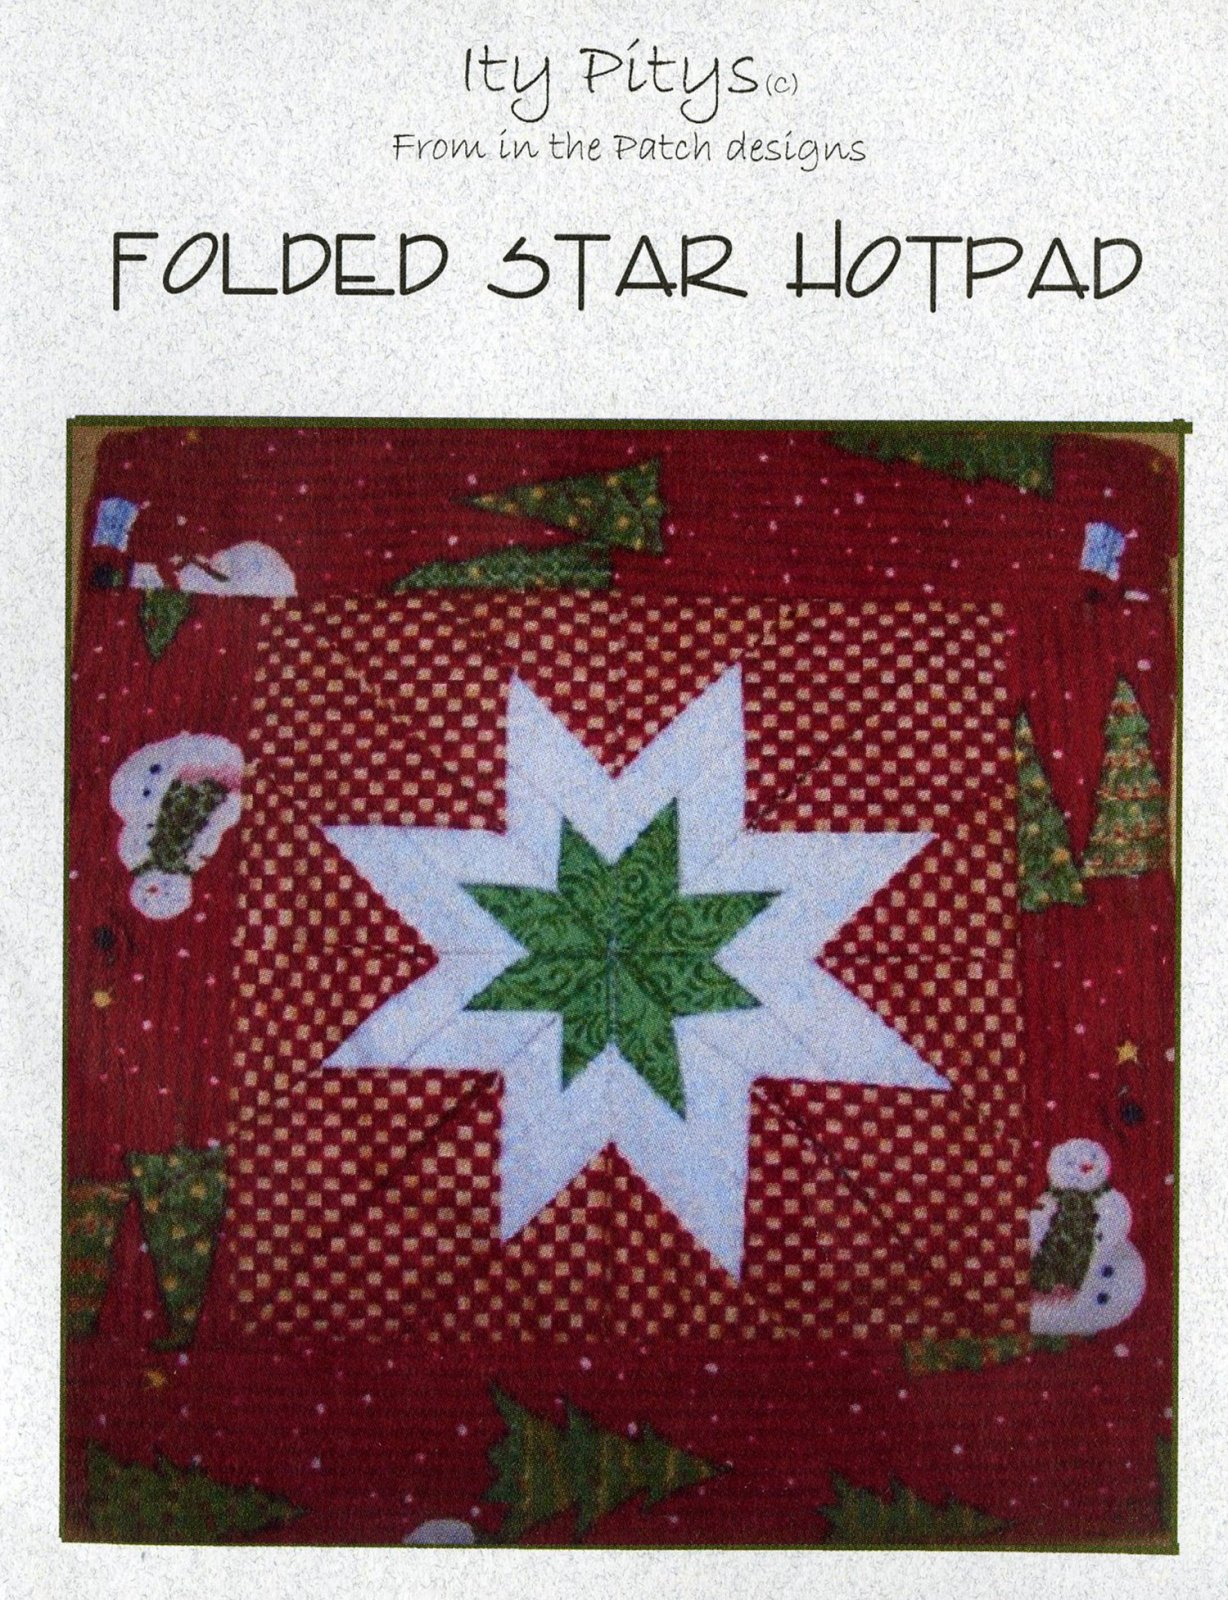 Itty Pitty Folded Star Previously Item WCP4781